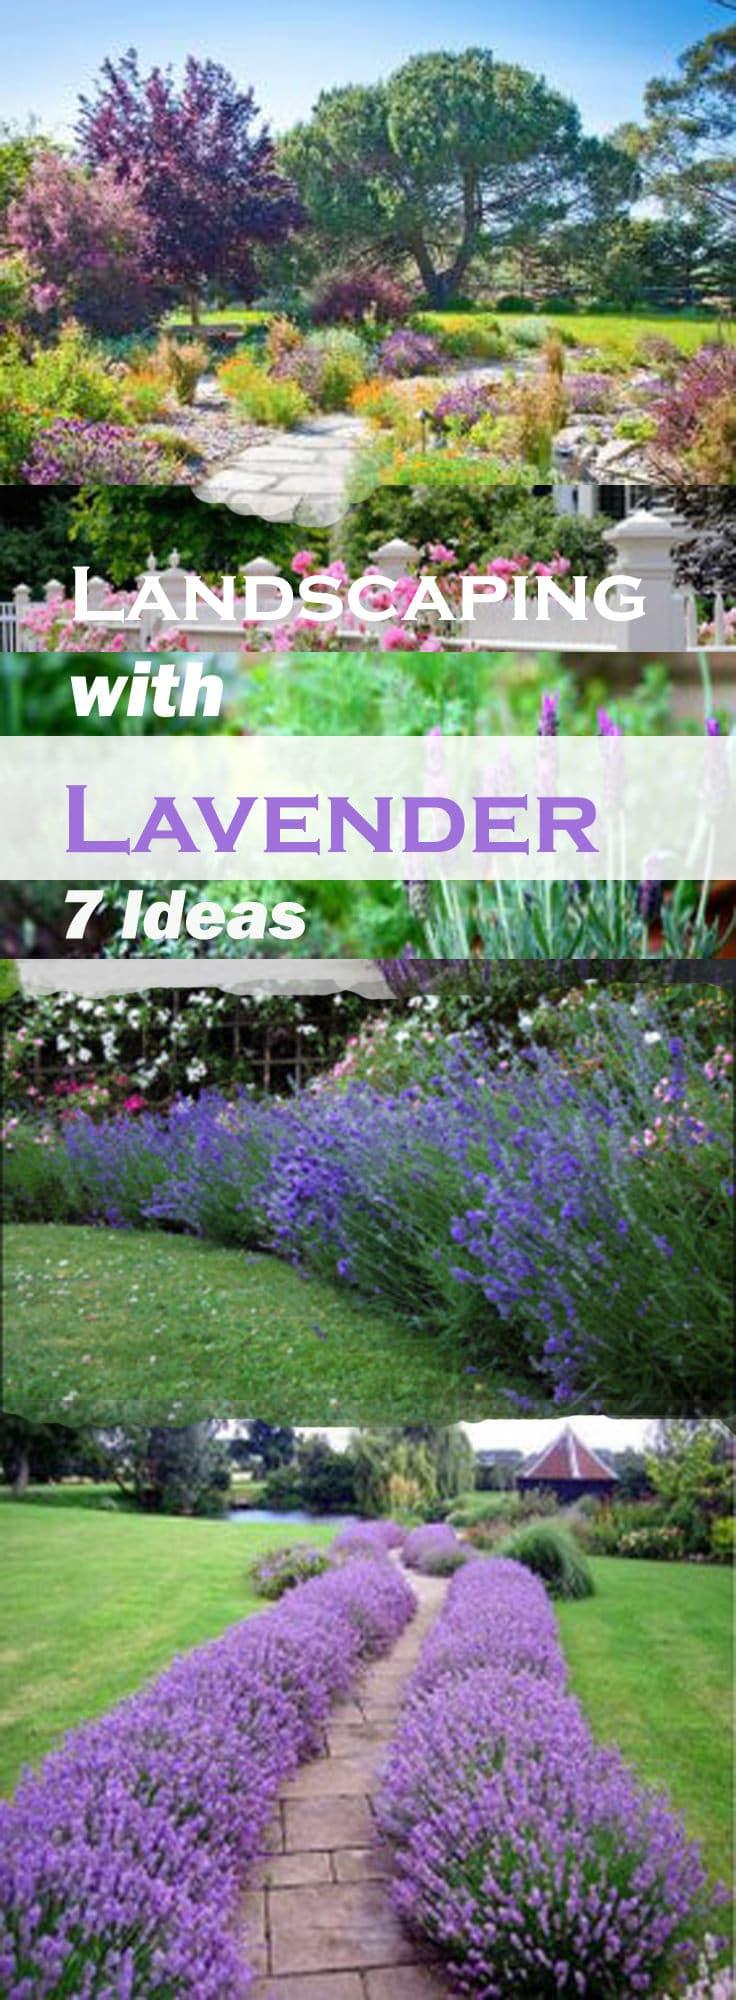 landscaping with lavender gardening idea